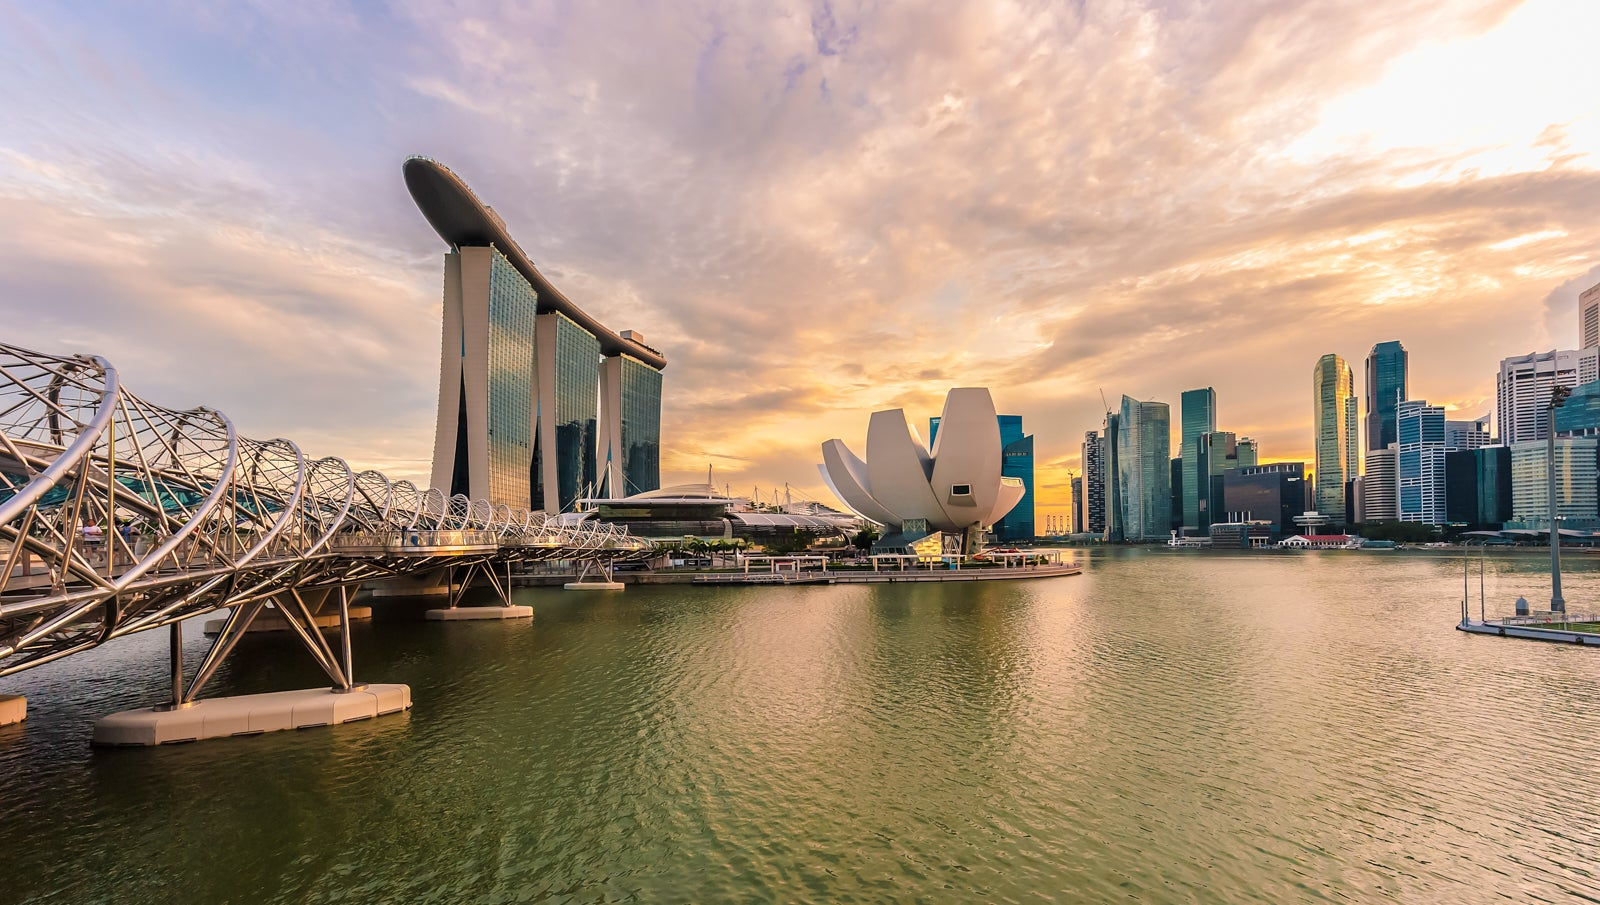 Singapore Airlines 51%-off sale: Save big on biz awards to Asia, economy to Europe from 11,025 miles